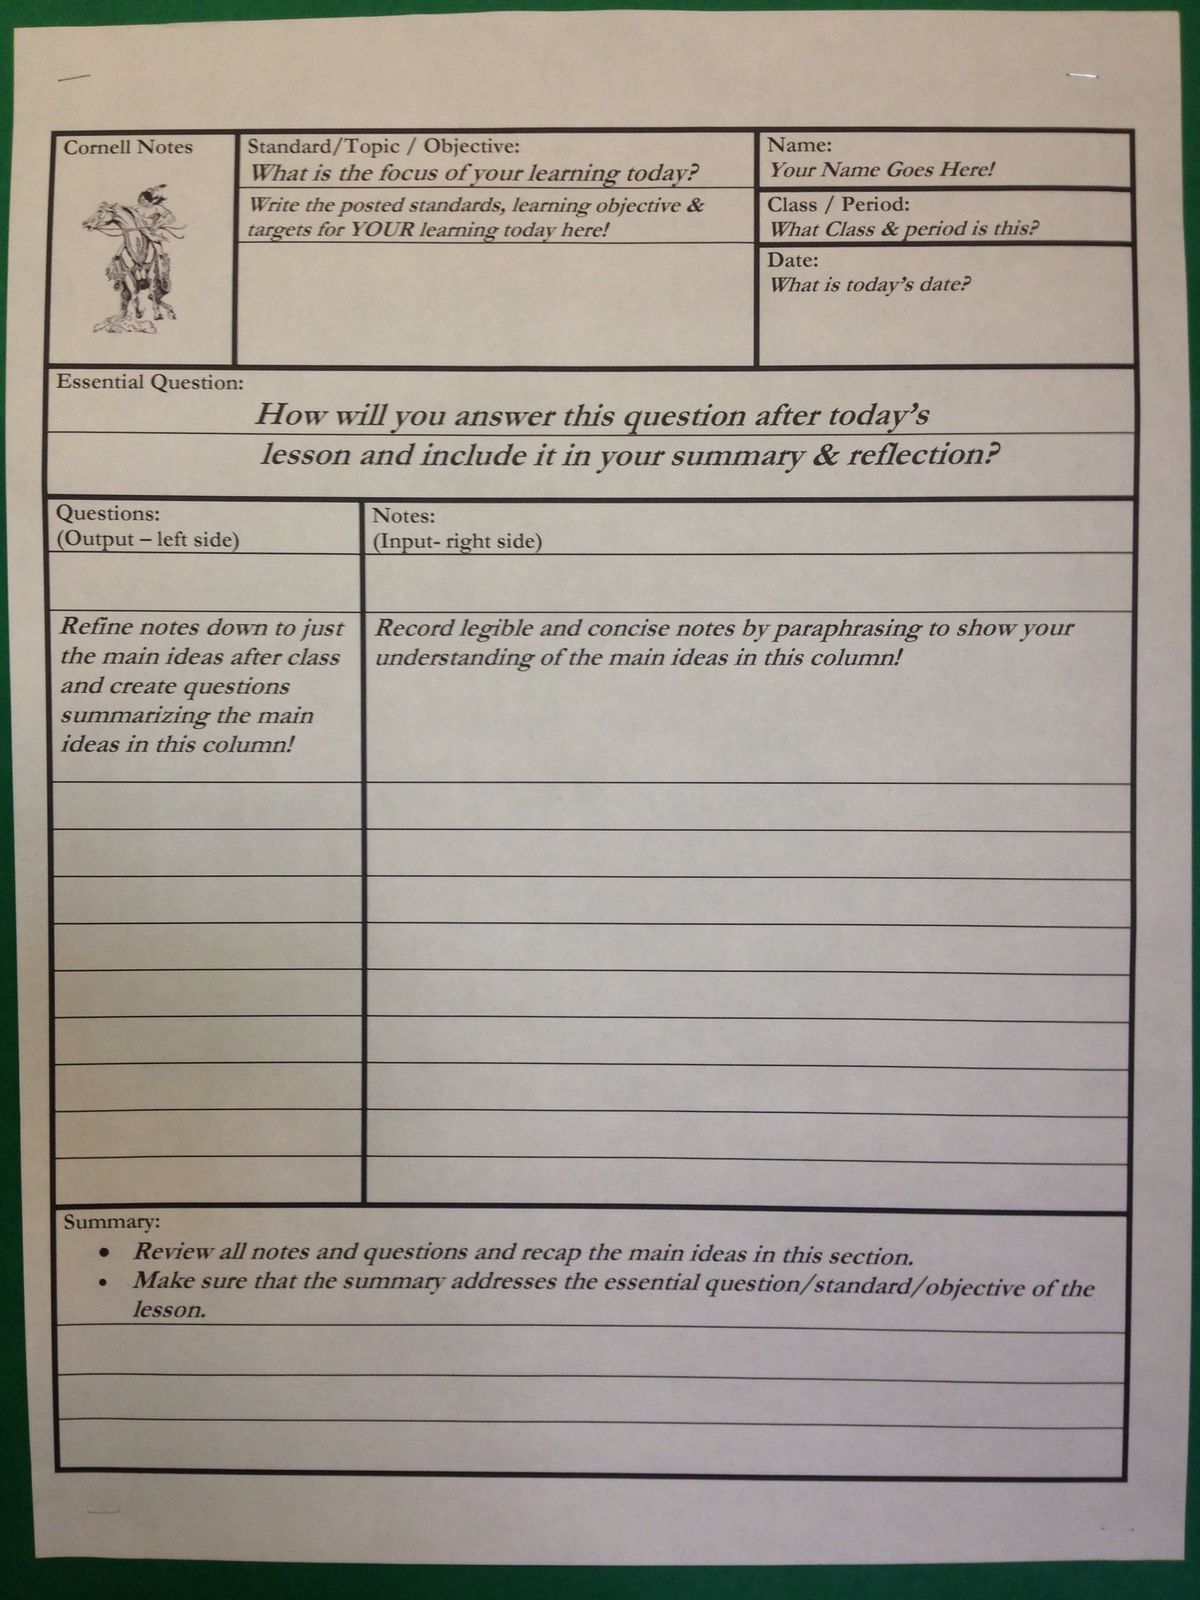 Pin By Iva Rice On Cornell Notes